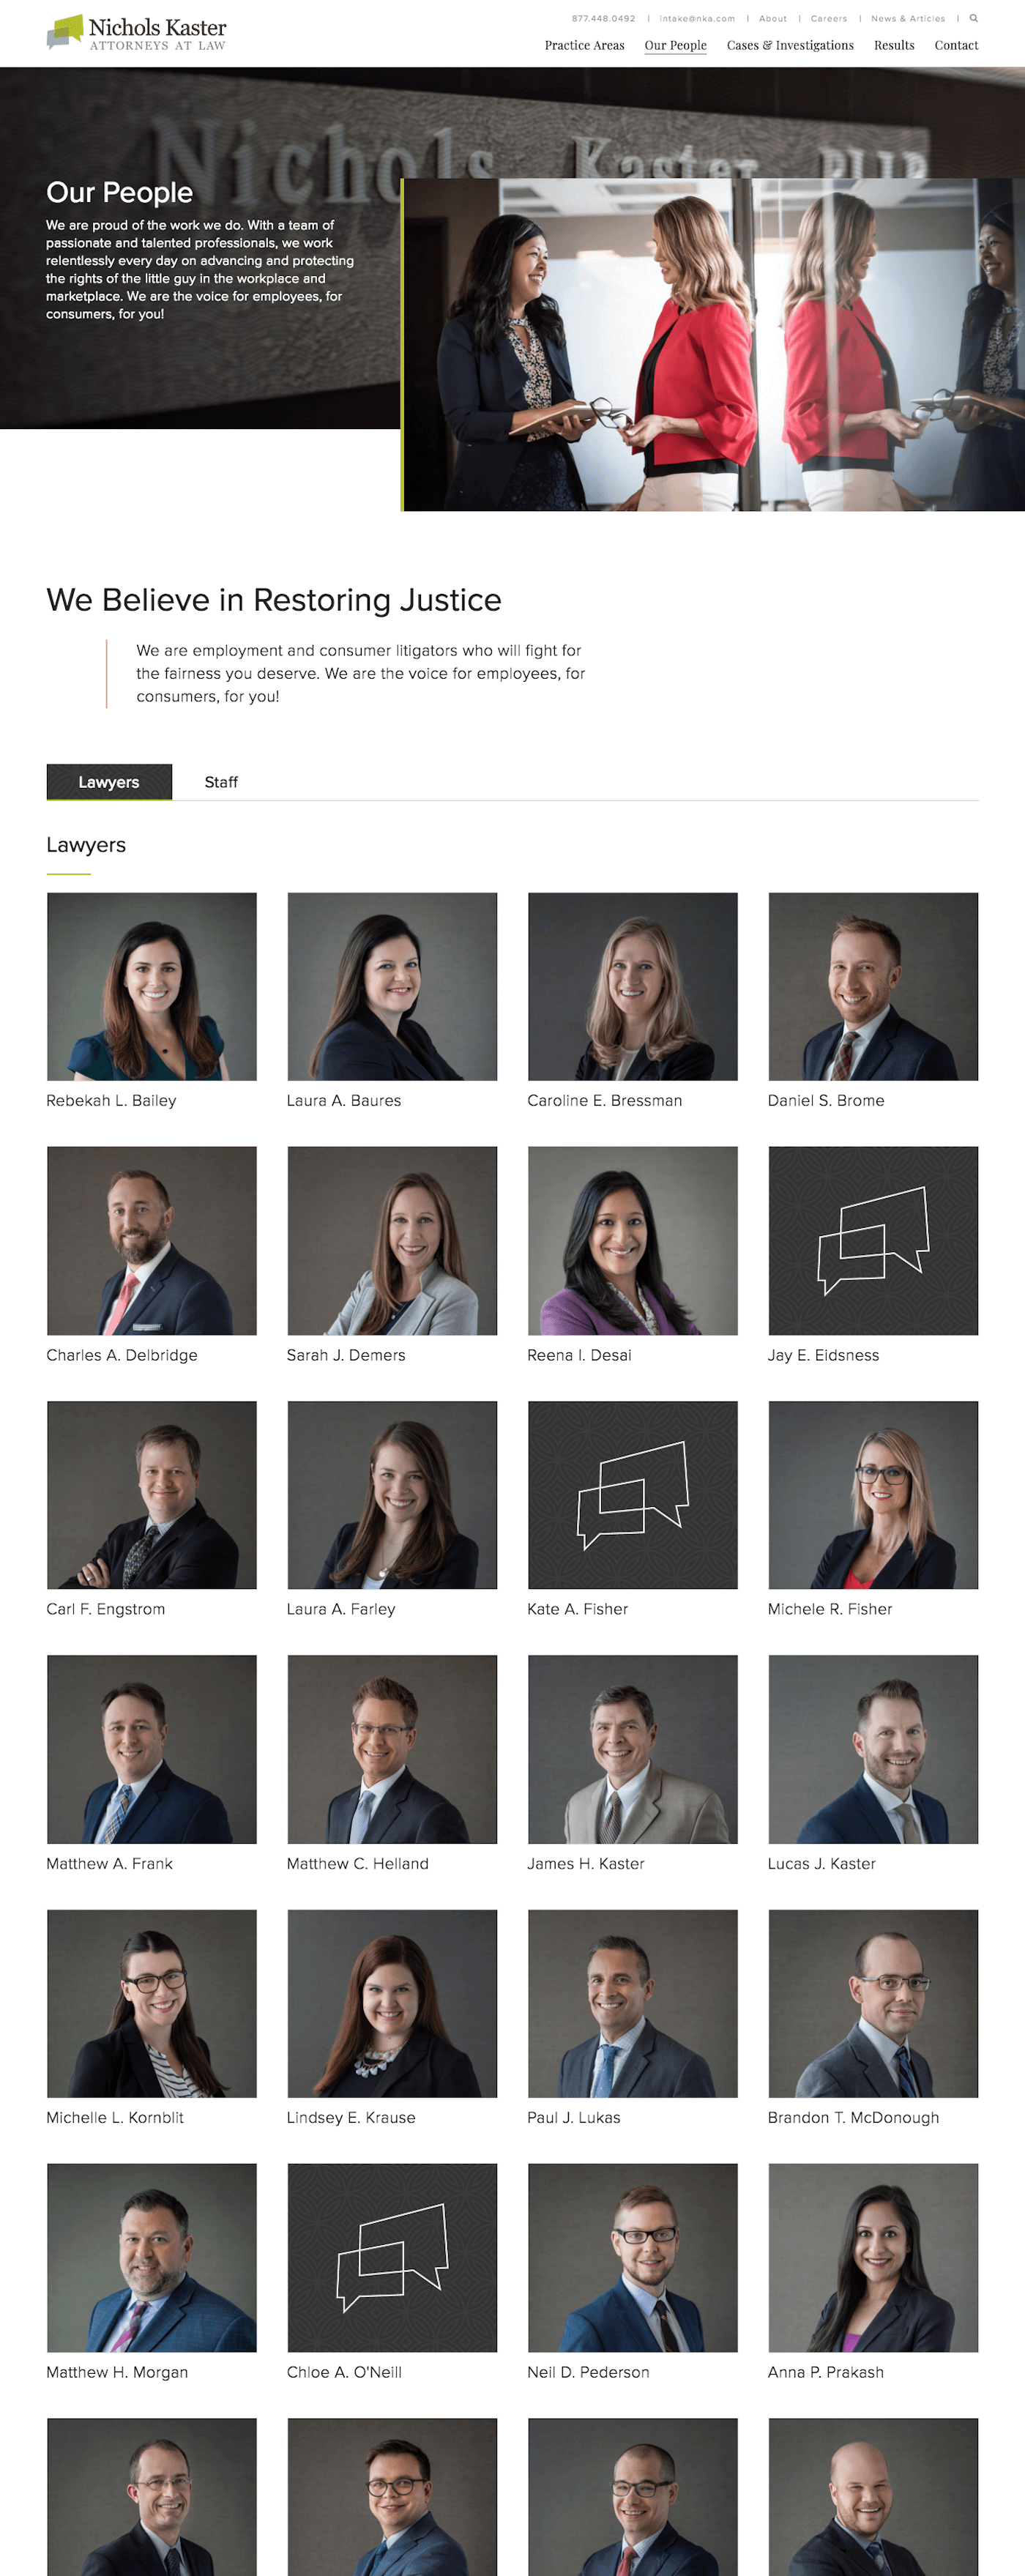 Nichols Kaster Web Design: Our People